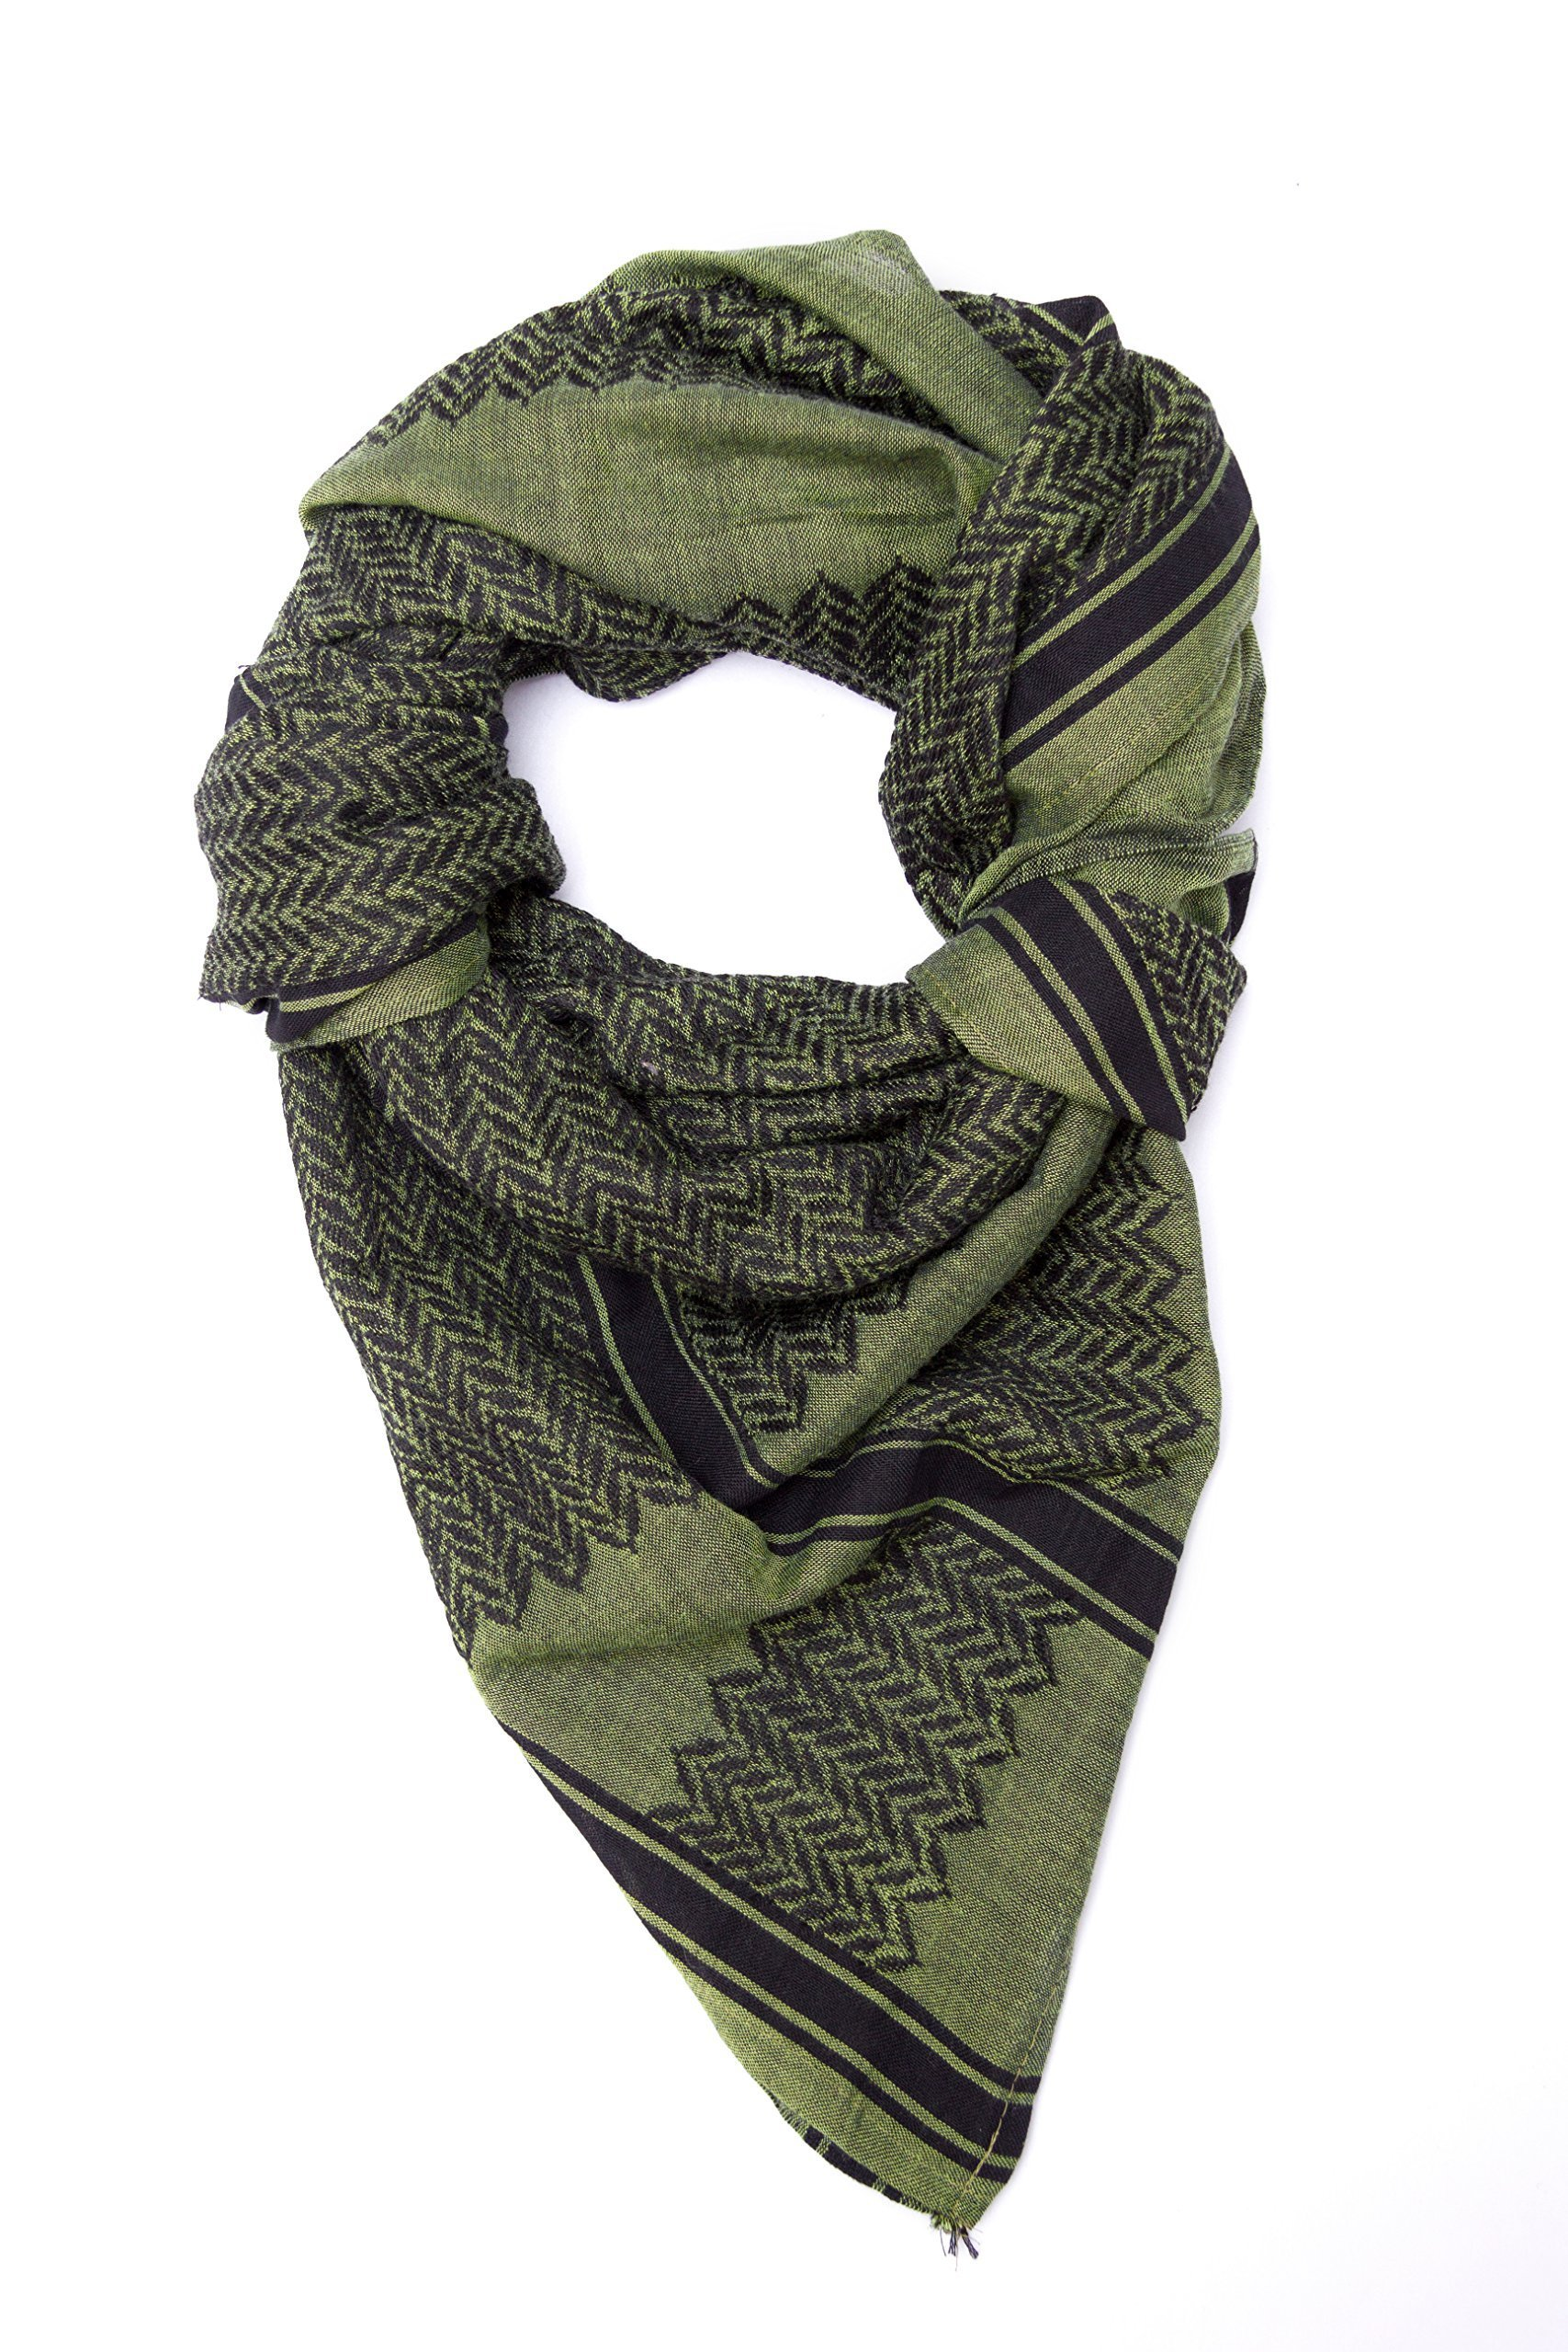 Premium Tactical Shemagh, 100% Cotton 47''x47'' Arab Scarf Shemagh Keffiyeh (Olive Drab)